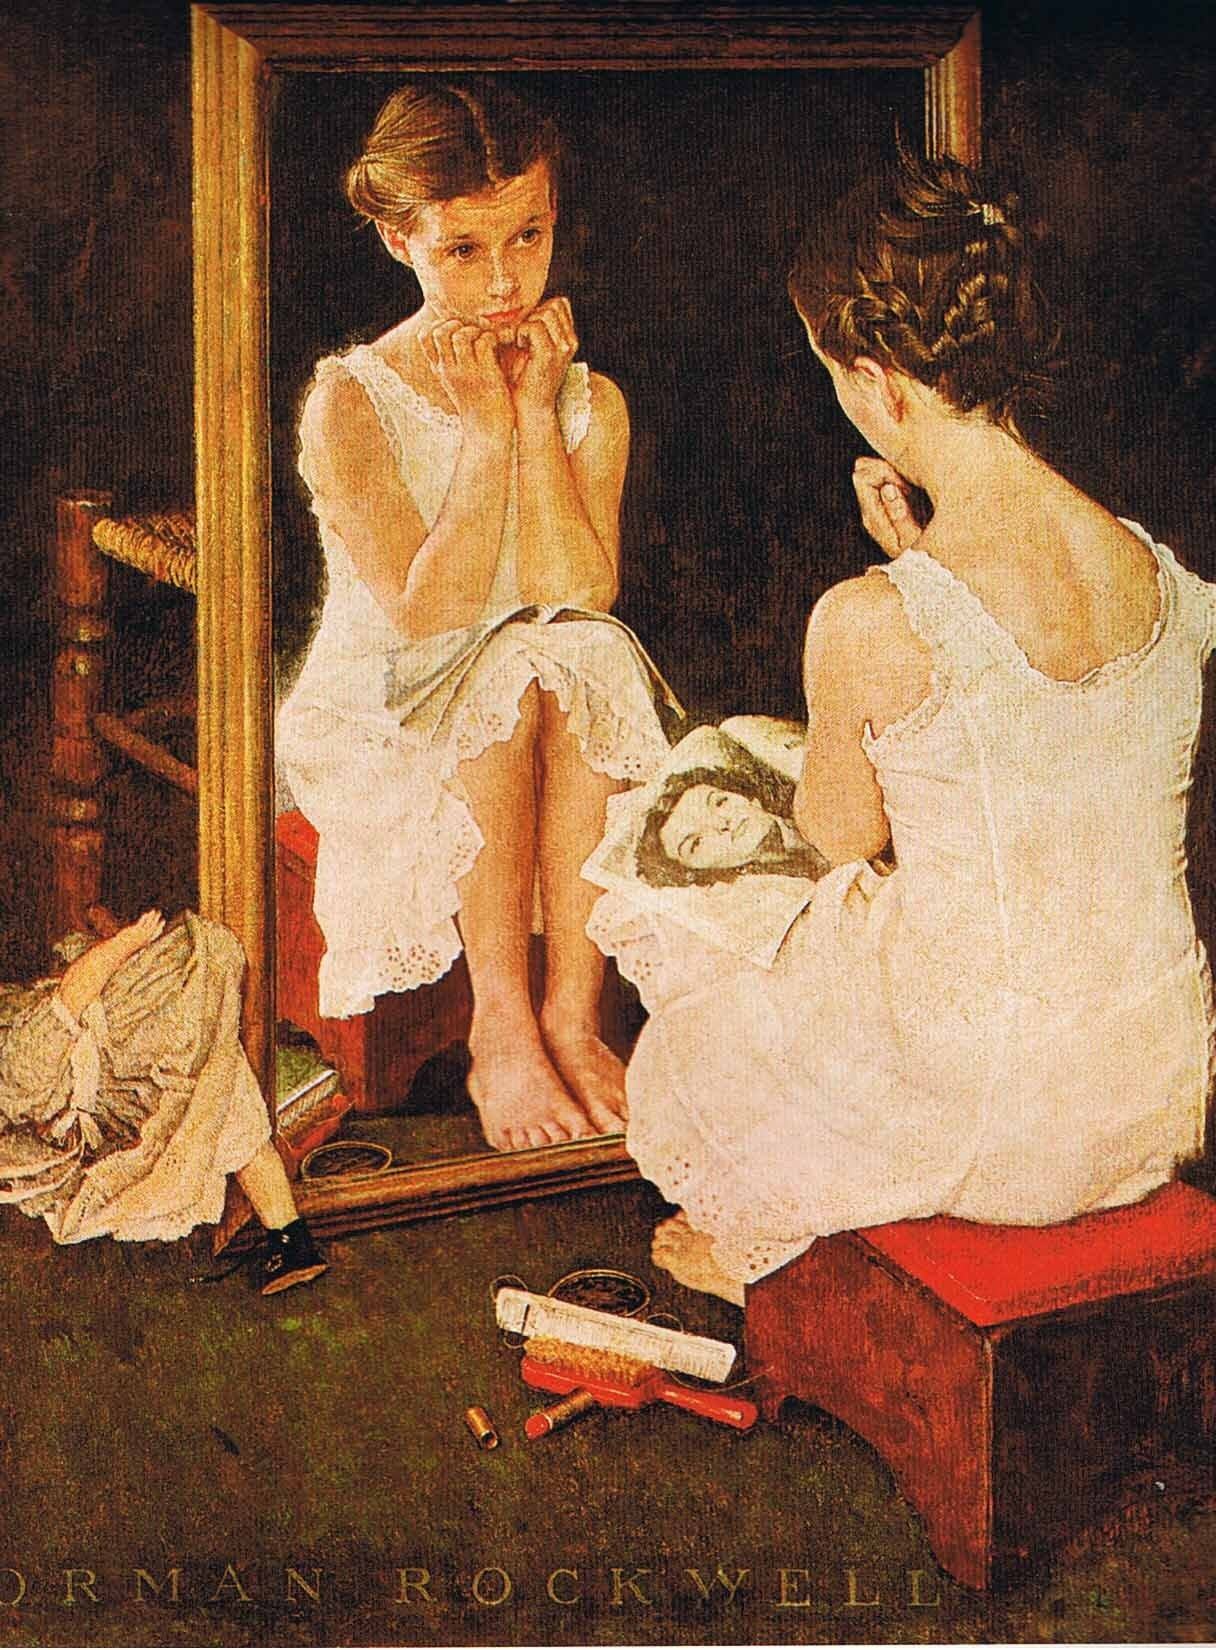 Vintage art print paper norman rockwell girl at the mirror for Le miroir dans la peinture